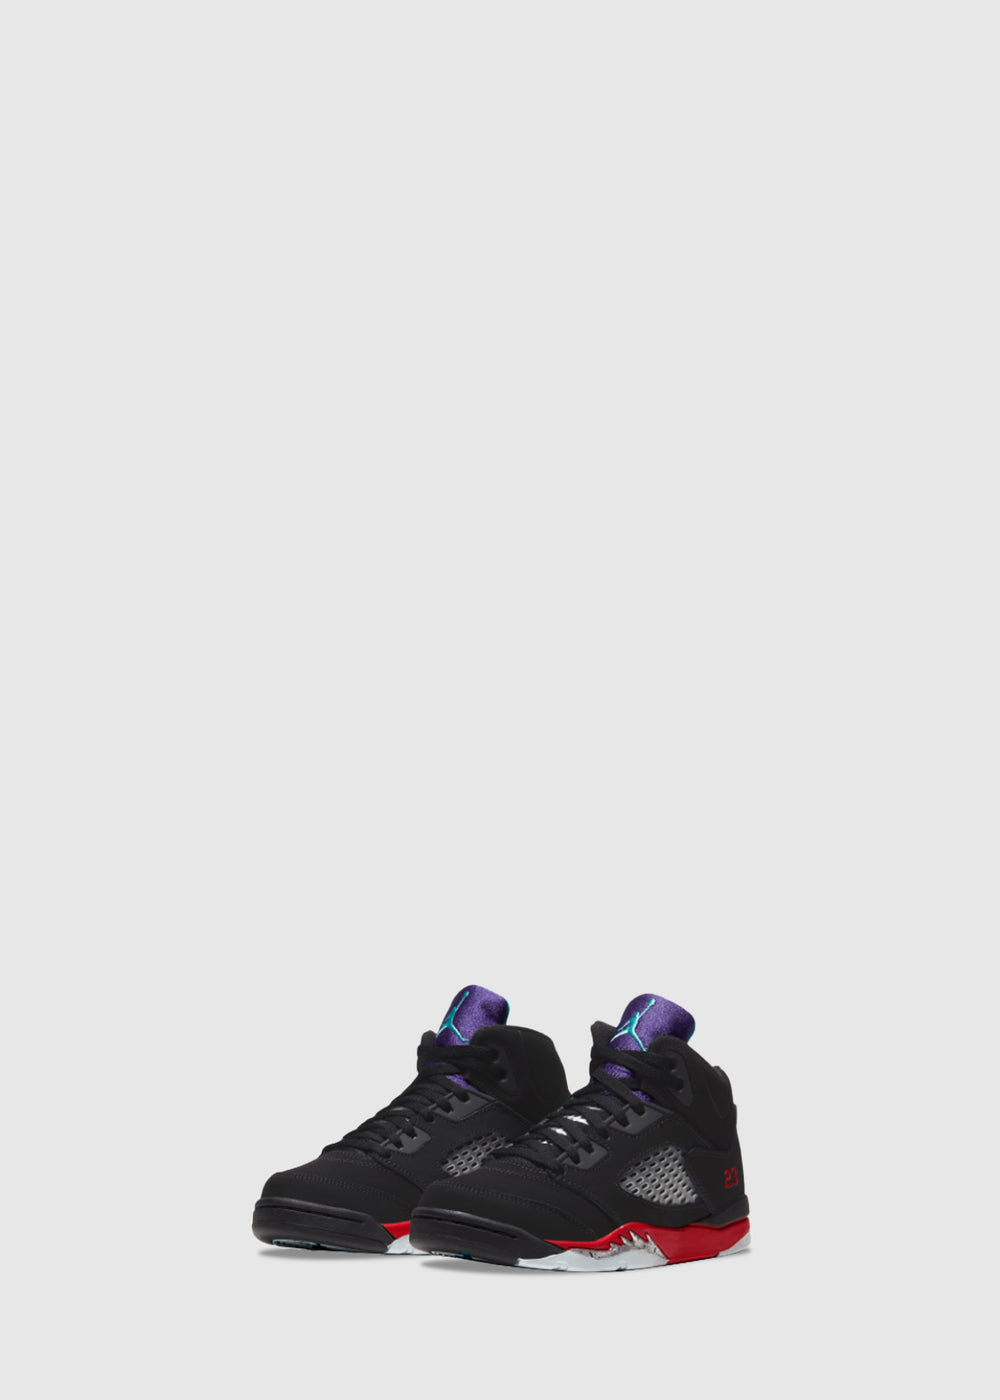 jordan-air-jordan-5-top-3-black-1-2